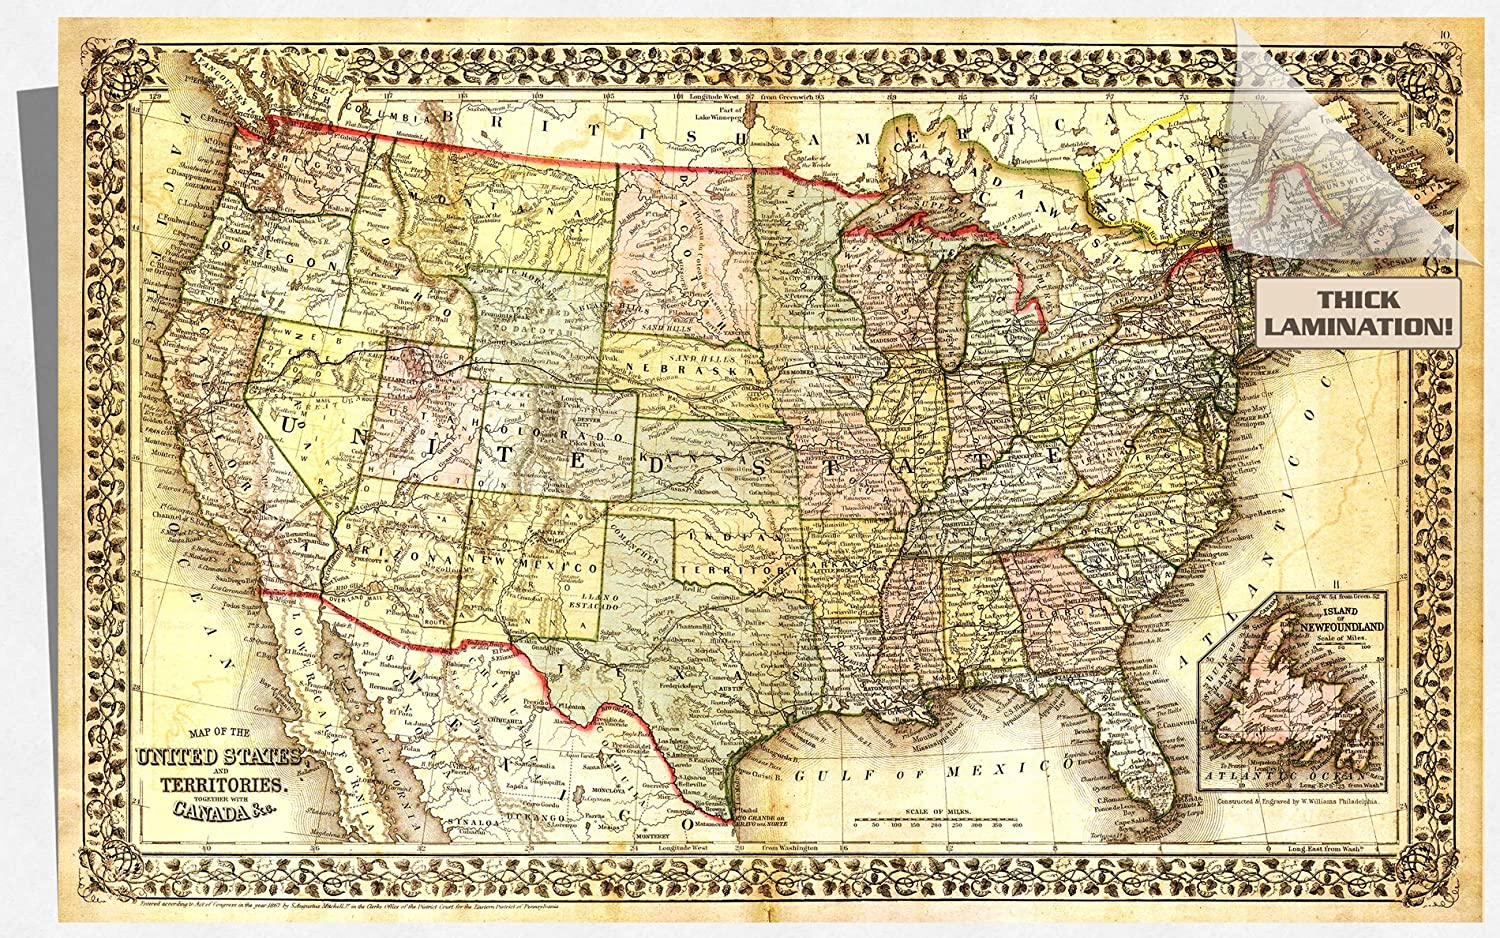 Amazon.com: Beautiful Vintage United States Map Poster - 12x7 Inches ...